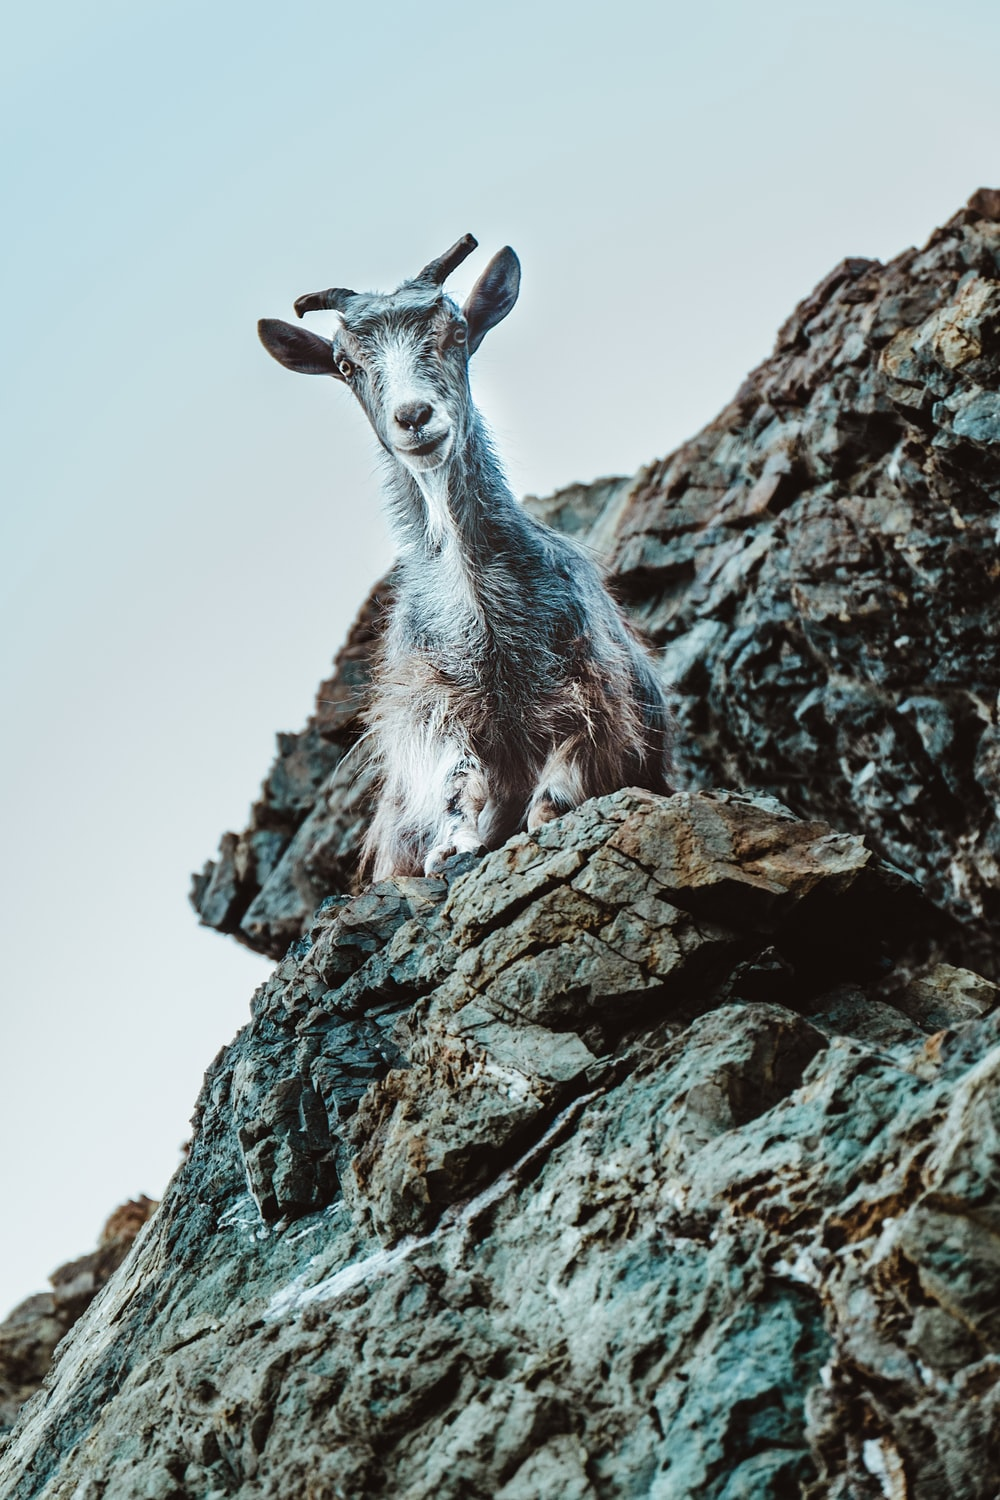 white and gray goat on rock formation at daytime